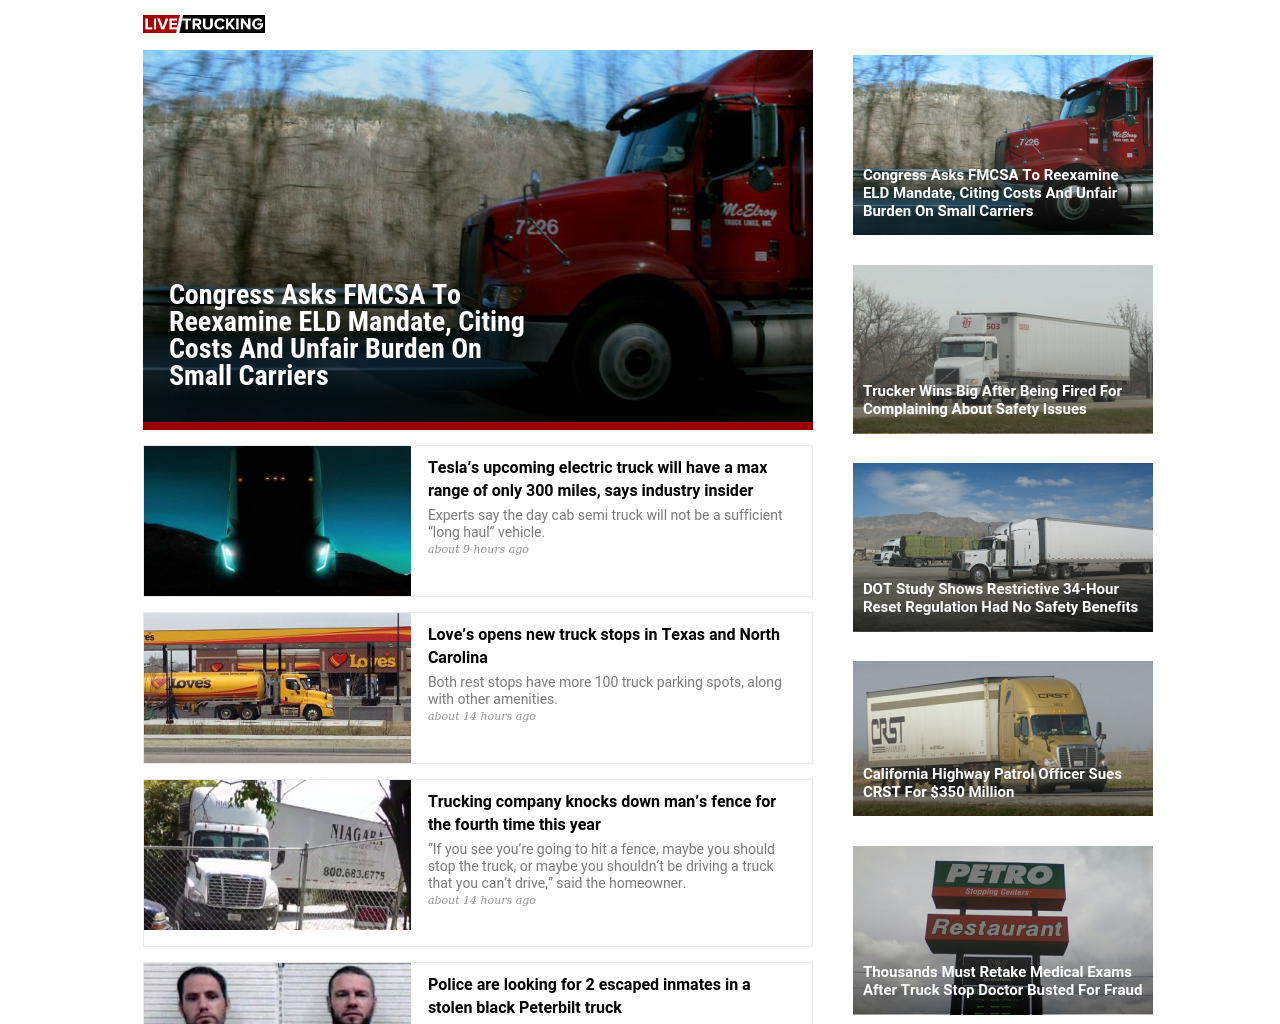 Live-Trucking-Advertising-Reviews-Pricing